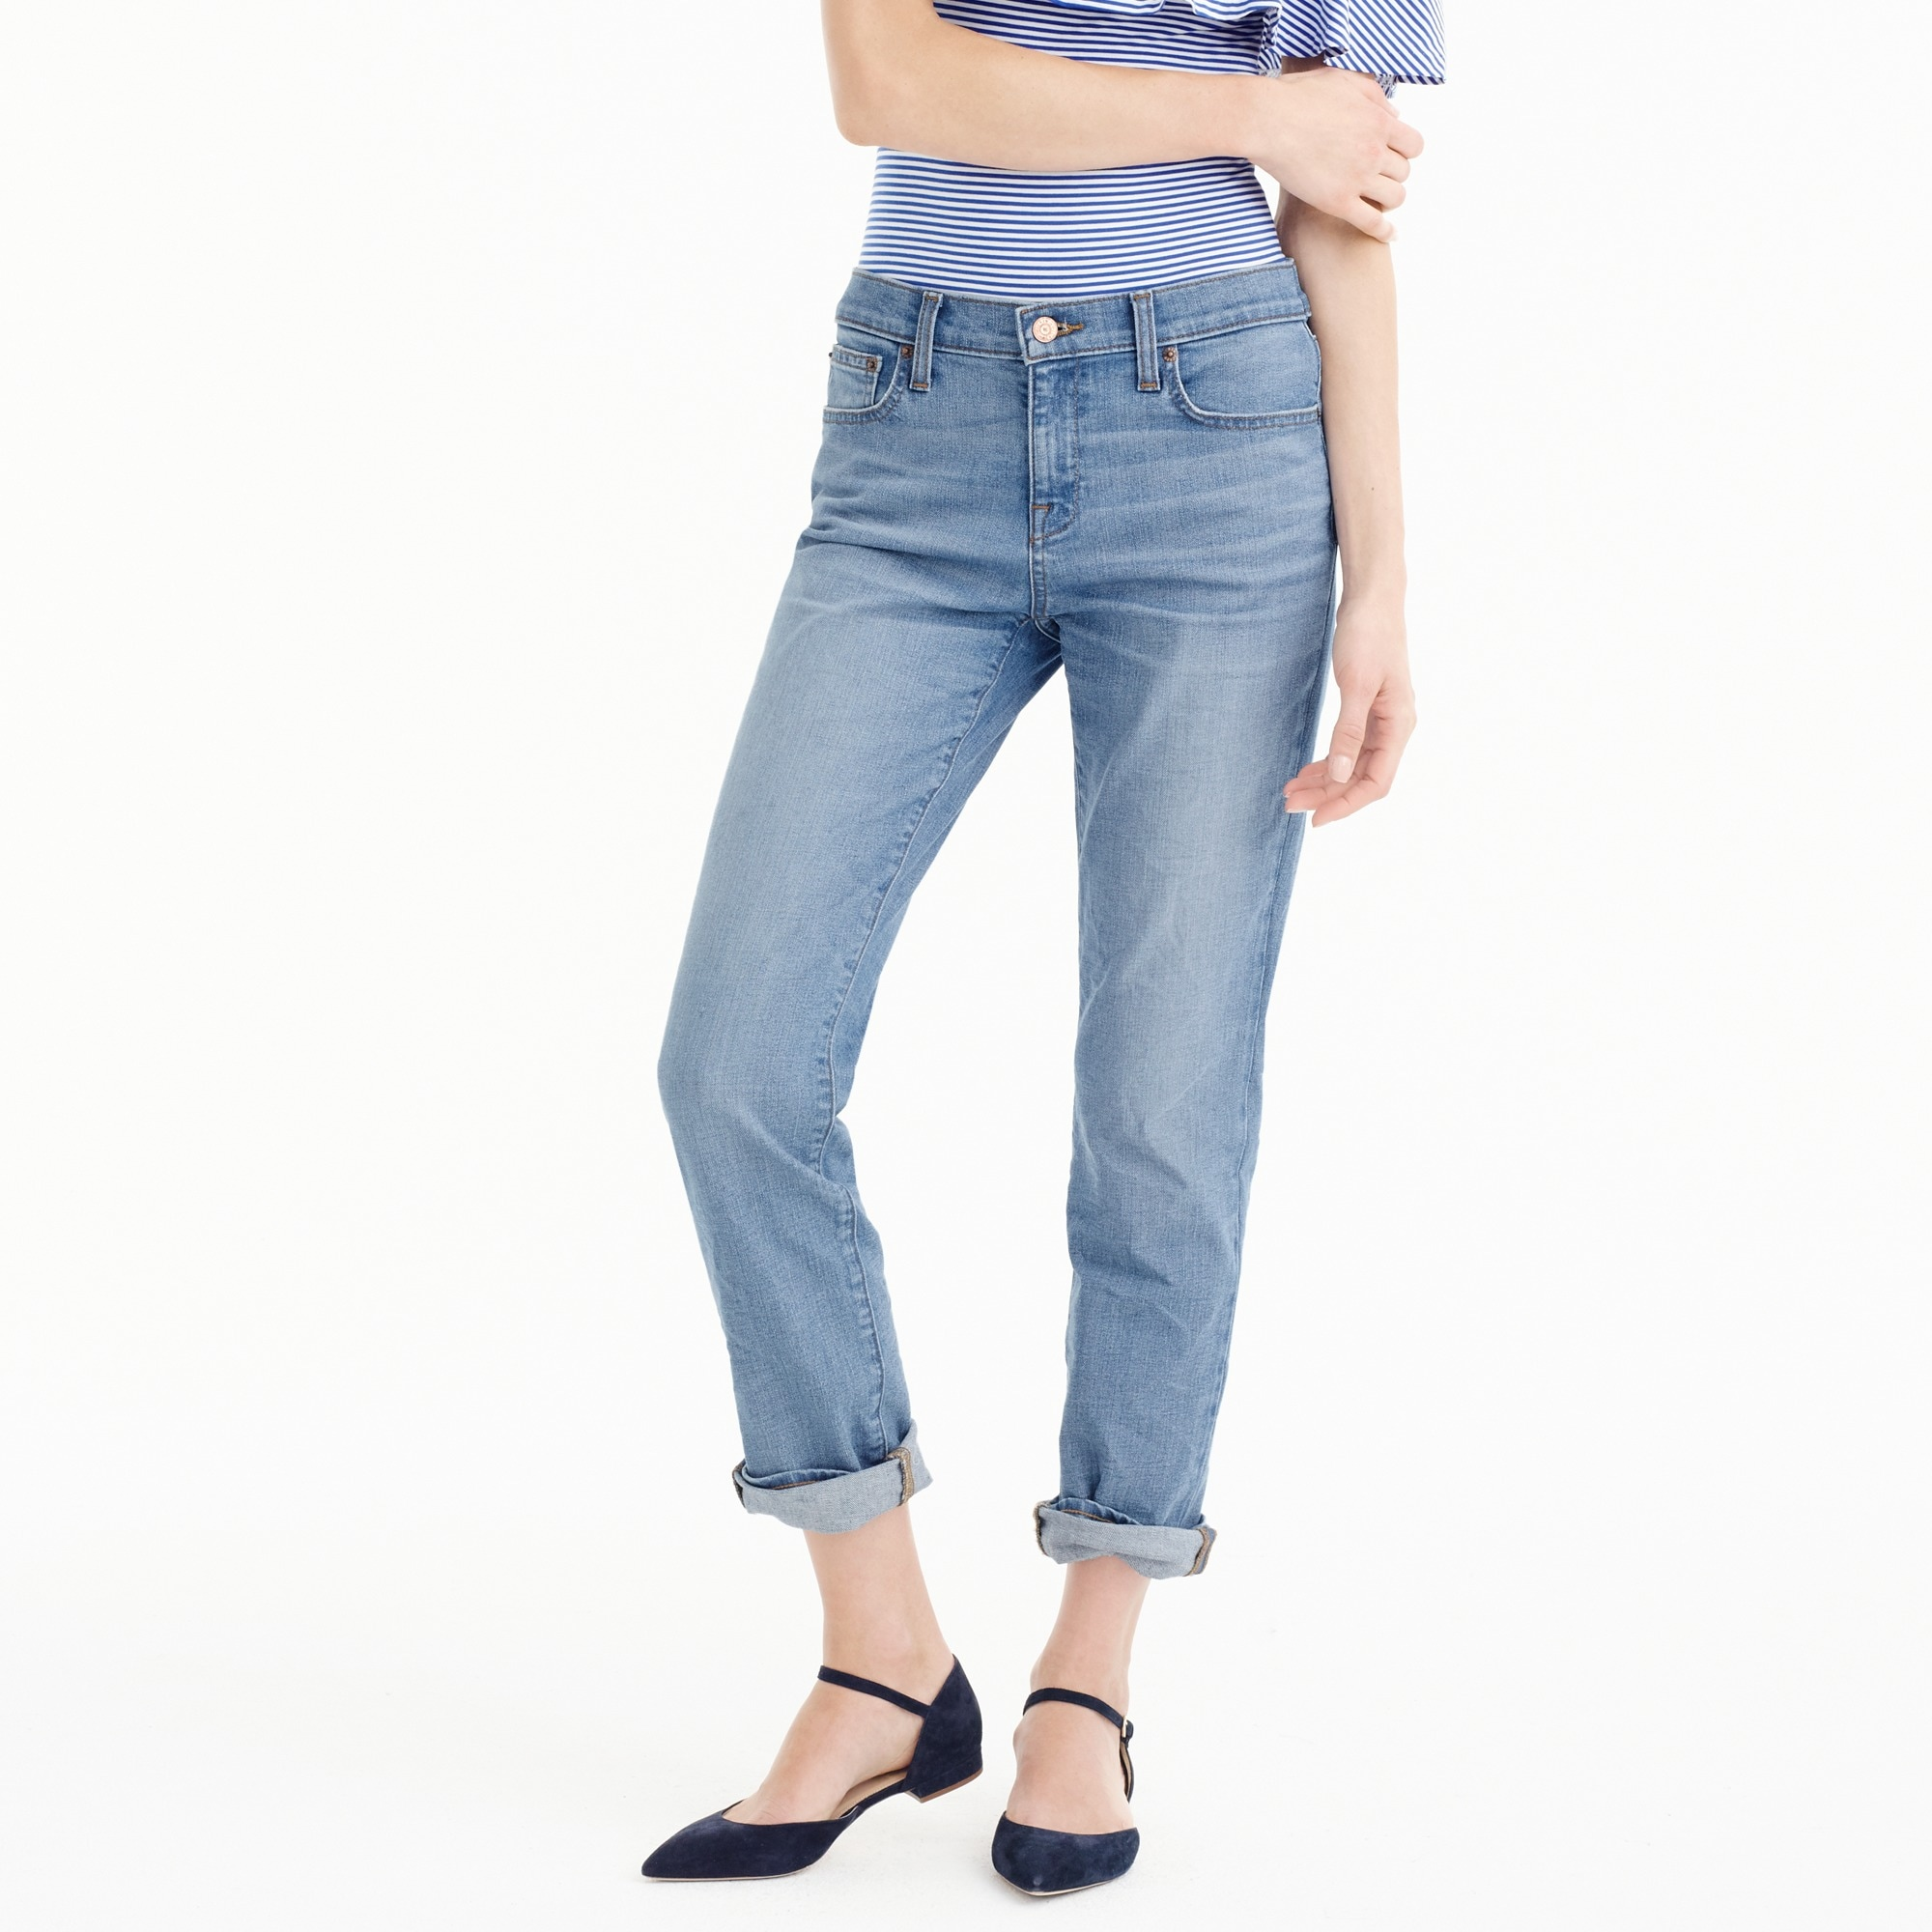 Slim boyfriend jean in Kellerton wash